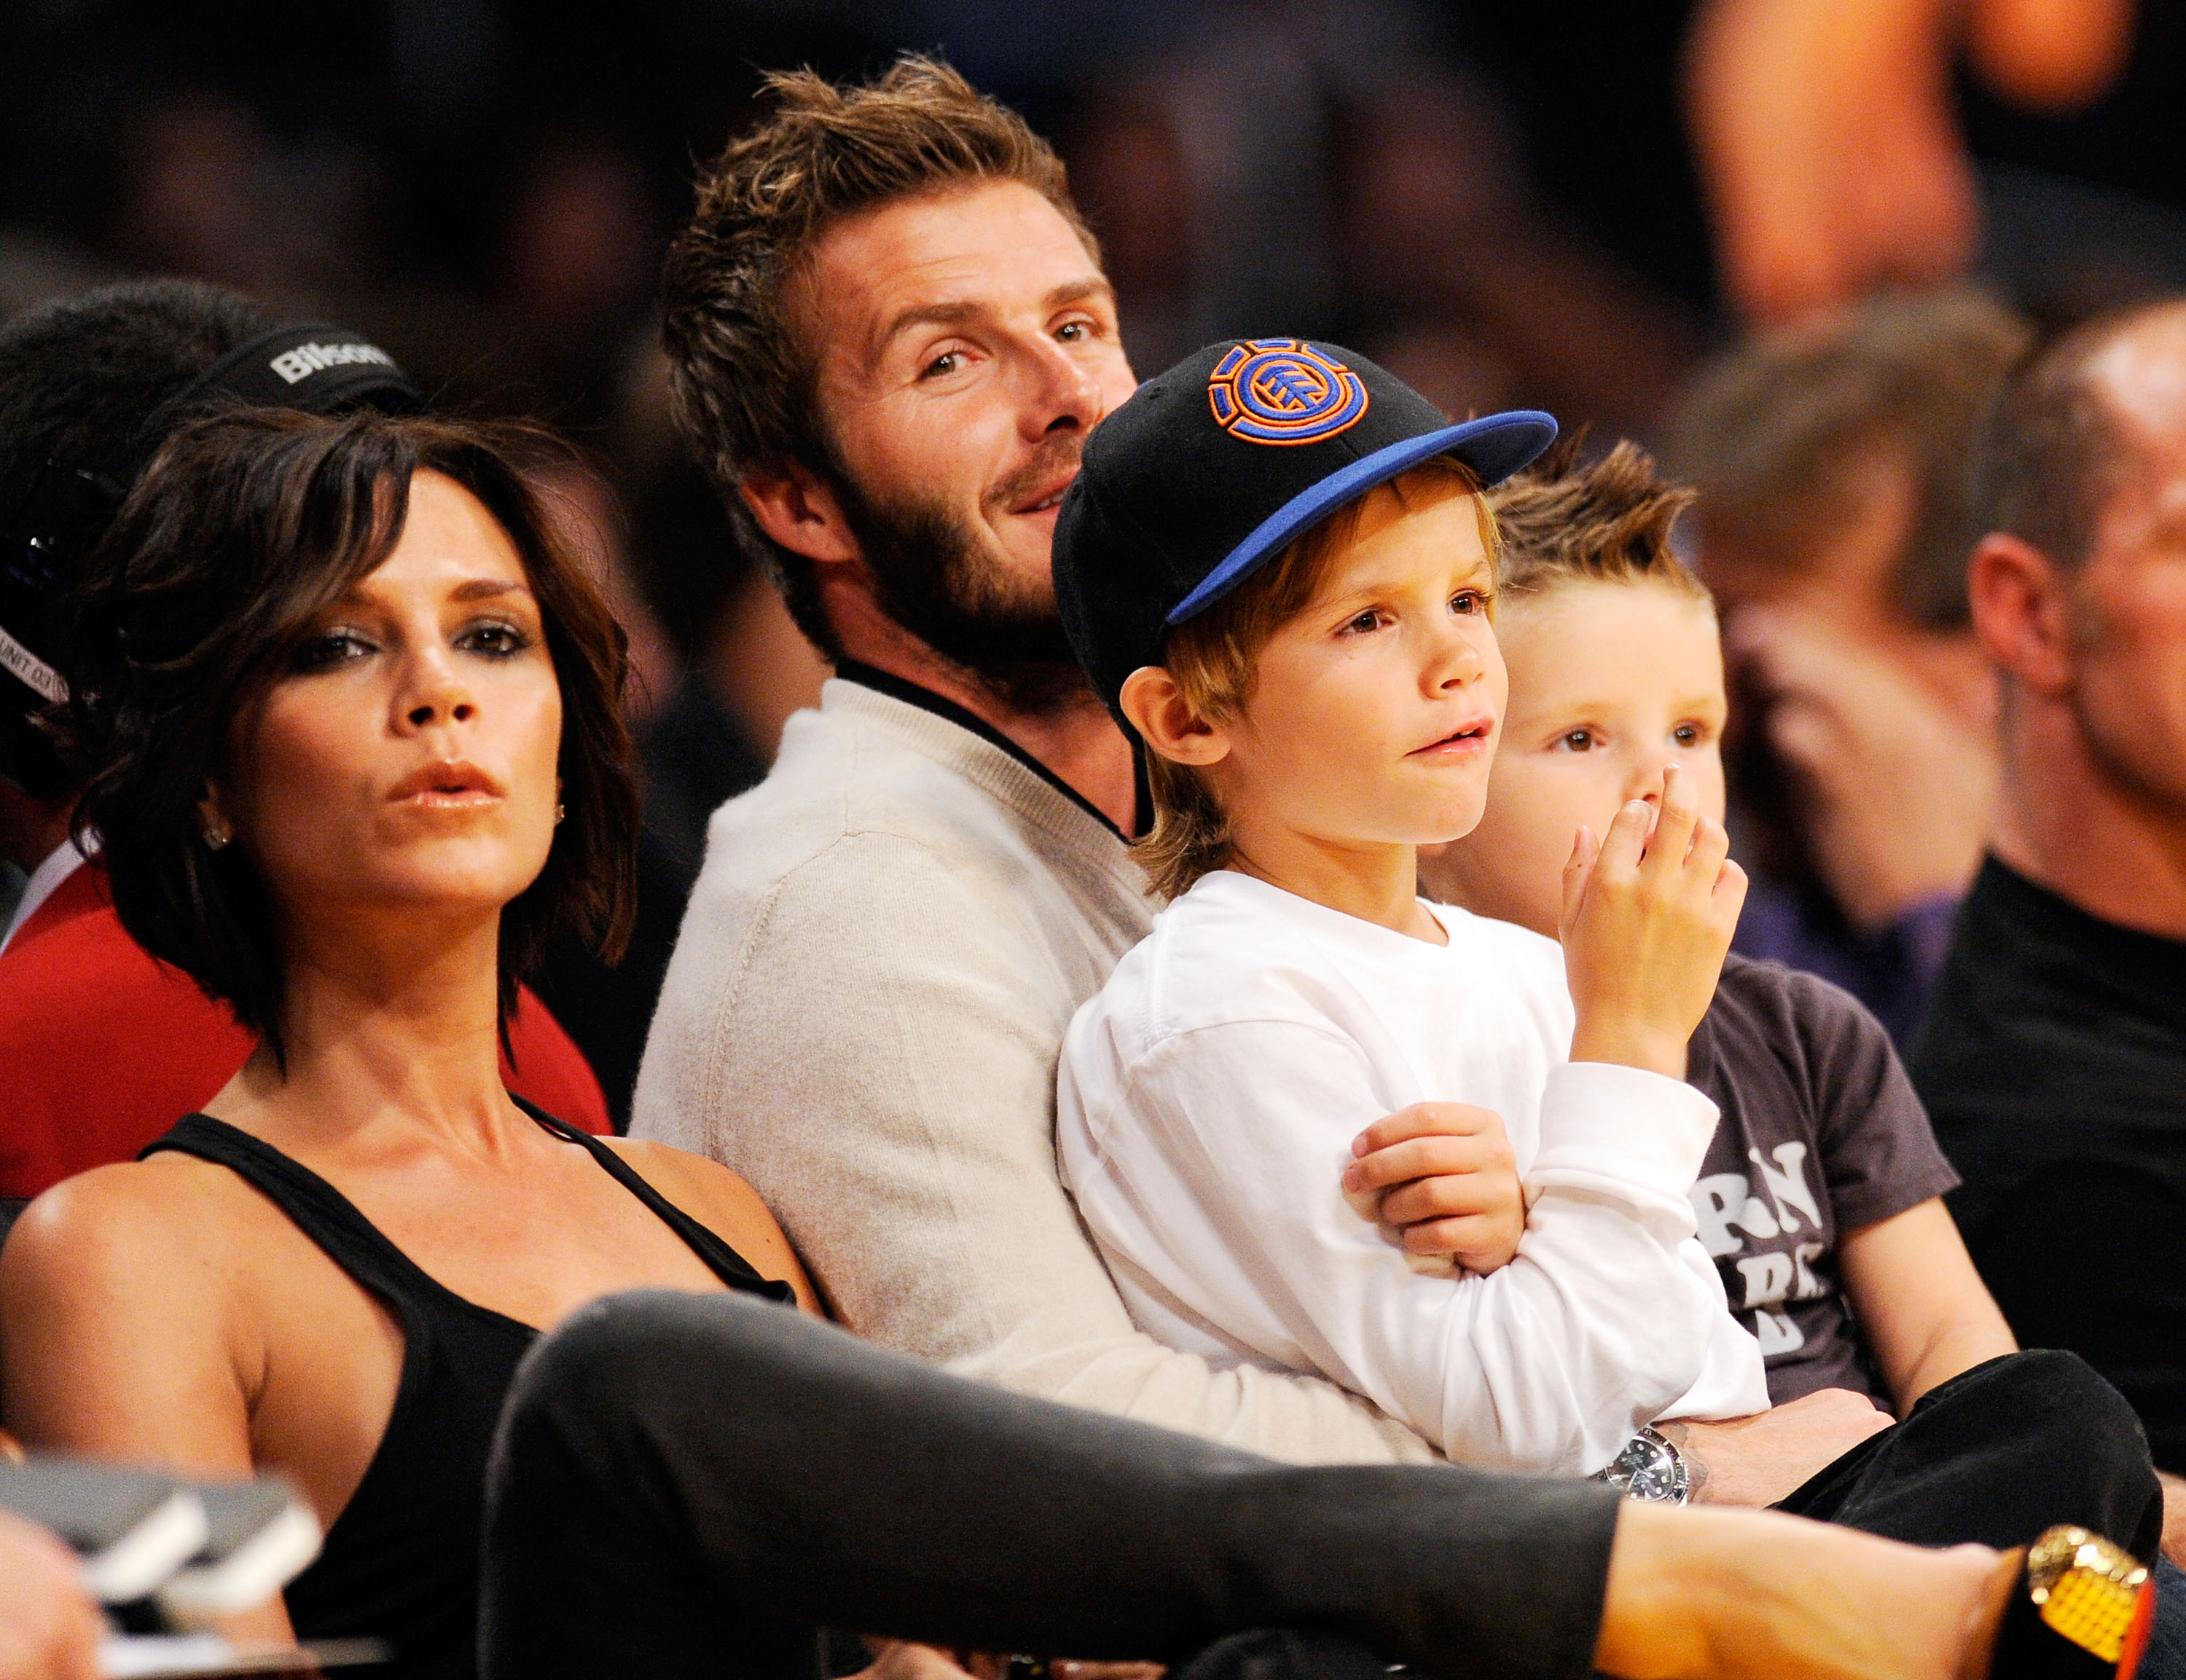 LOS ANGELES, CA - OCTOBER 30:  David Beckham and his wife Victoria follow the action between the Los Angeles Lakers and  the Dallas Mavericks along with their children Cruz, left, and Romeo, center right, at Staples Center on October 30, 2009 in Los Angel